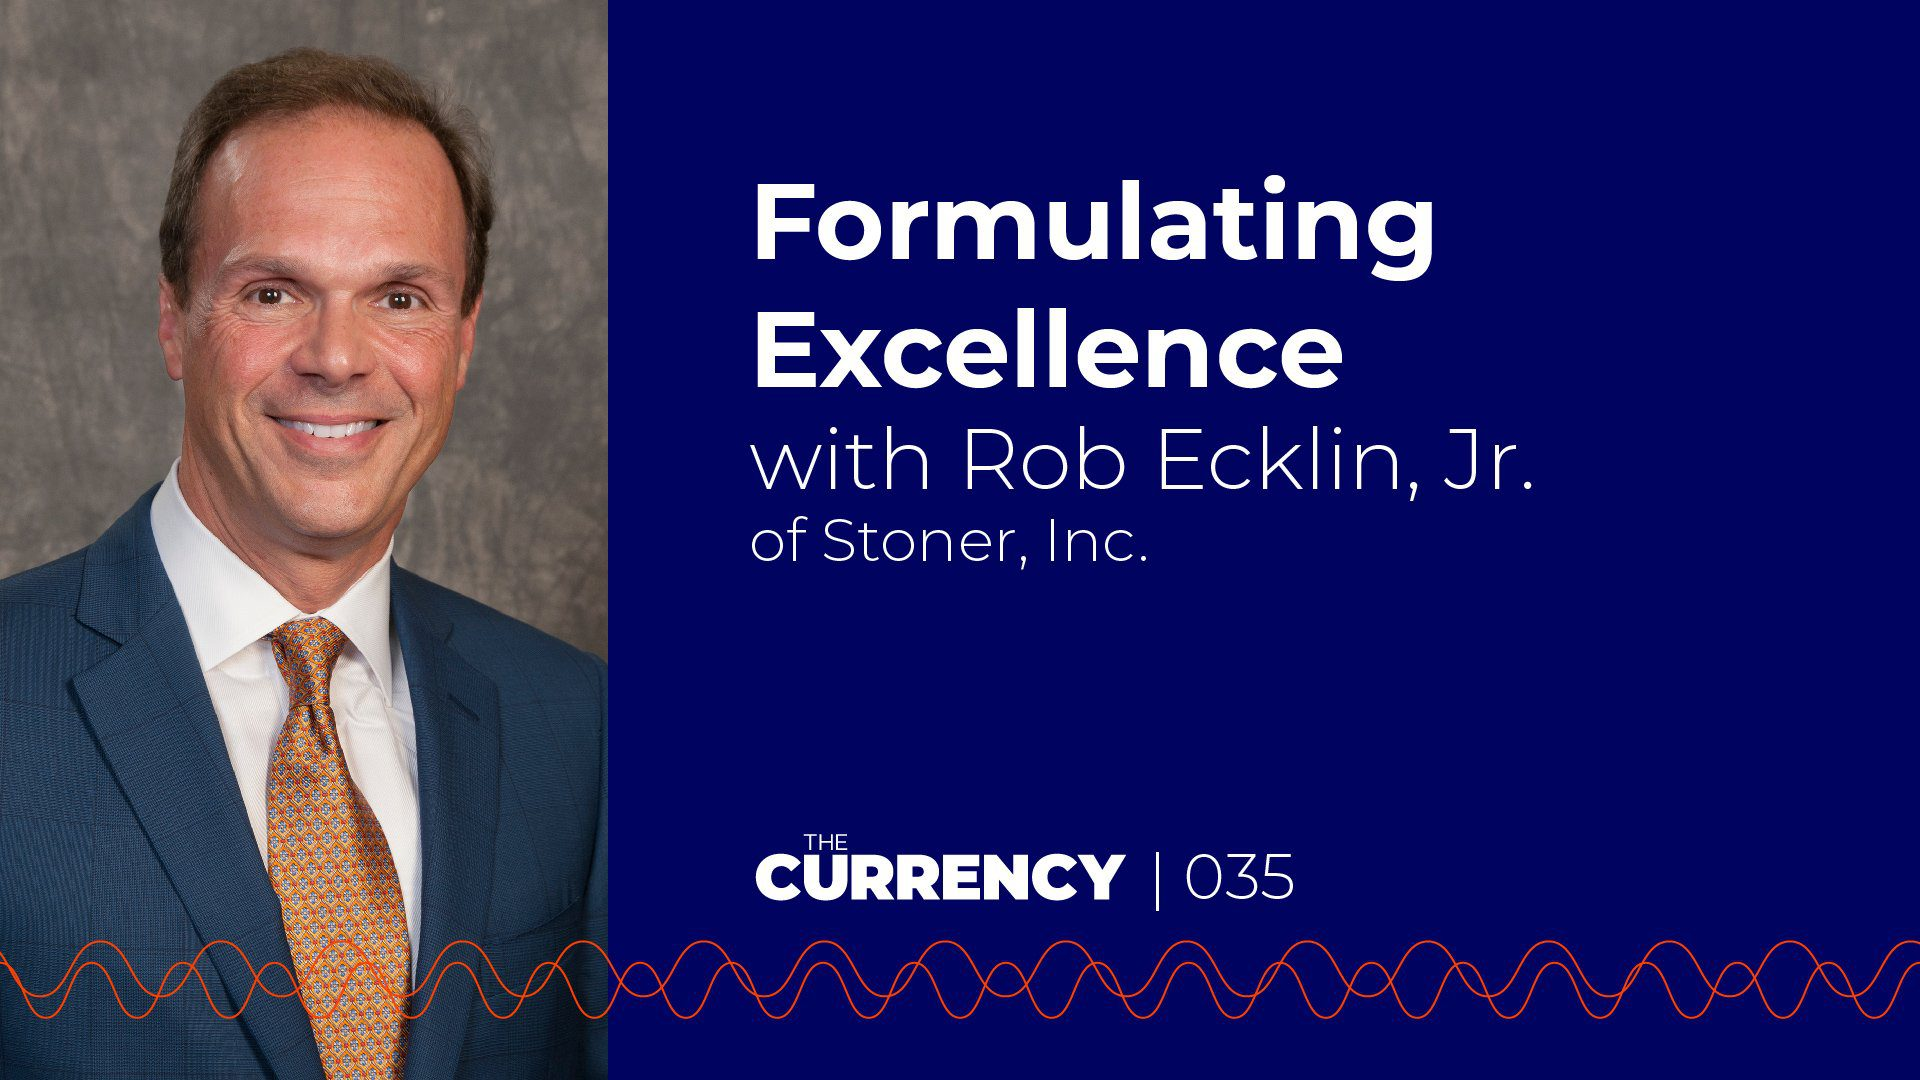 Rob Ecklin, Jr. on The Currency